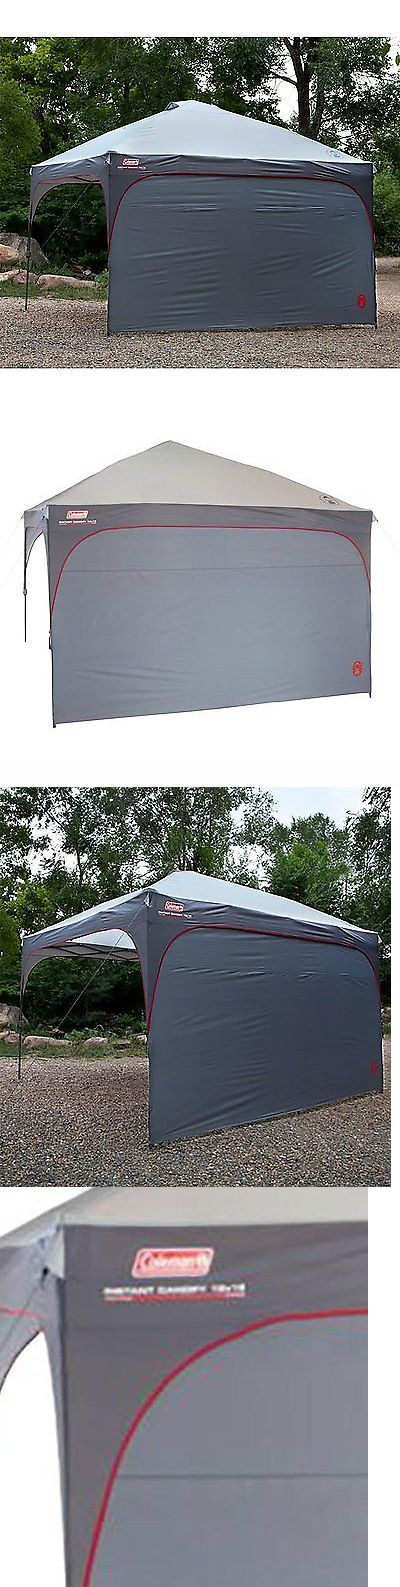 Tent and Canopy Accessories 36120: Coleman Instant Canopy Sunwall Accessory - 12 X 12 -> BUY IT NOW ONLY: $126.73 on eBay!